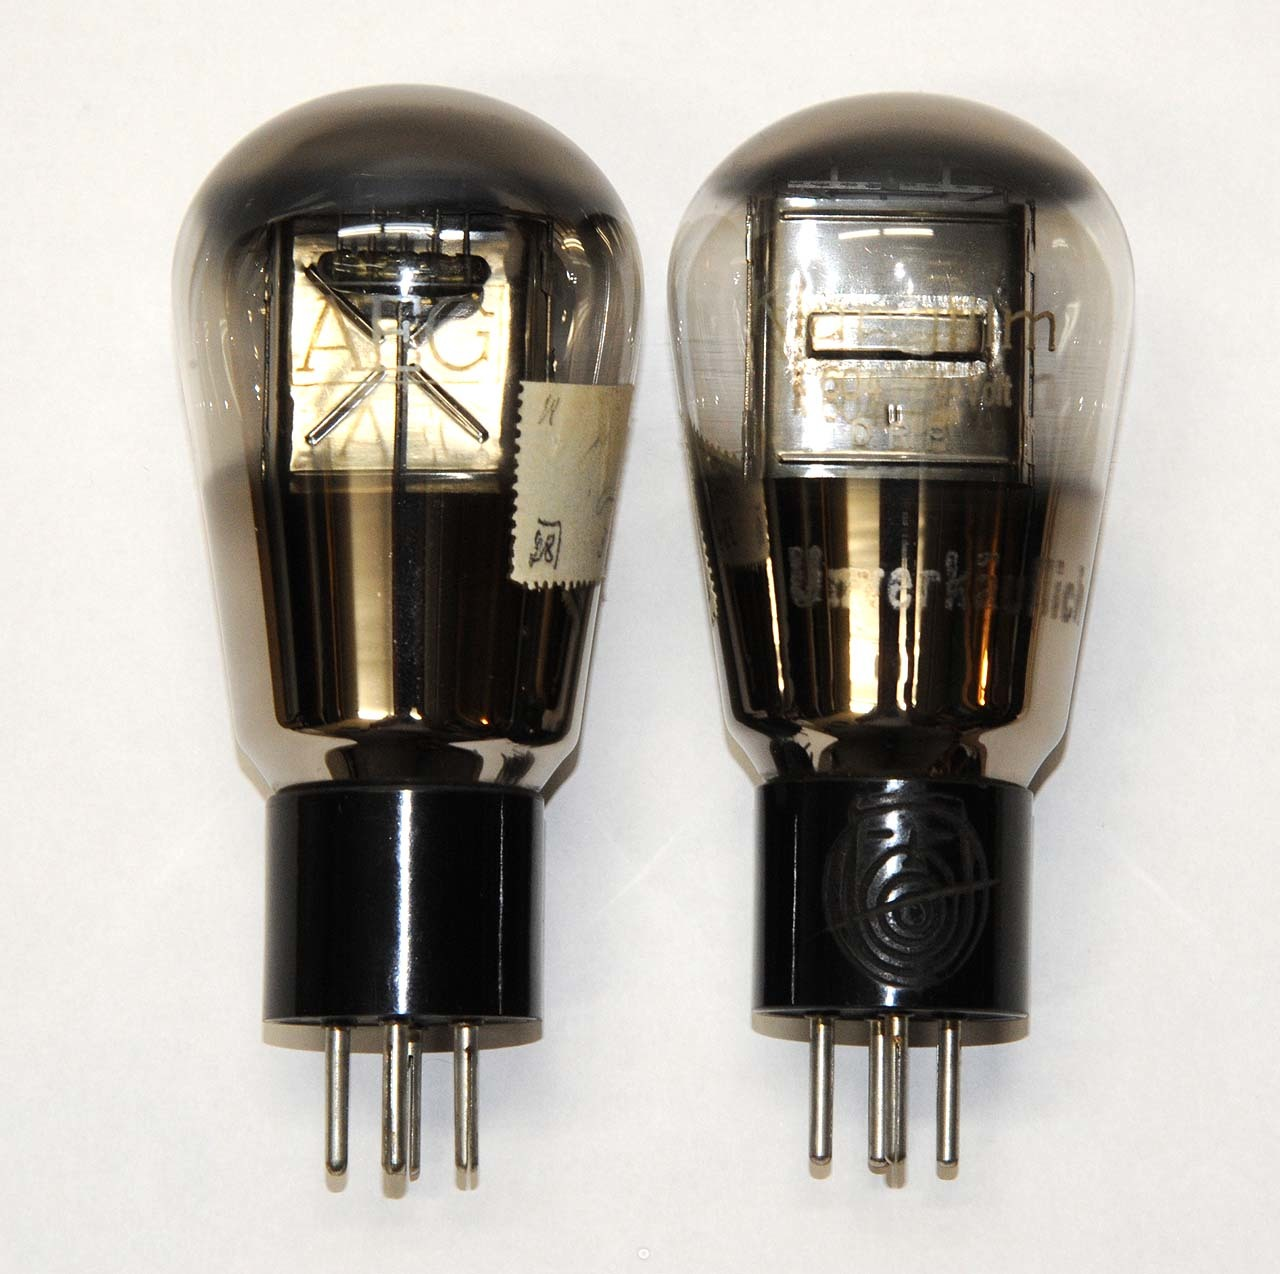 AEG K604 vacuum tubes (Klangfilm version of Telefunken RE604) used at the final stage of Zetton amps